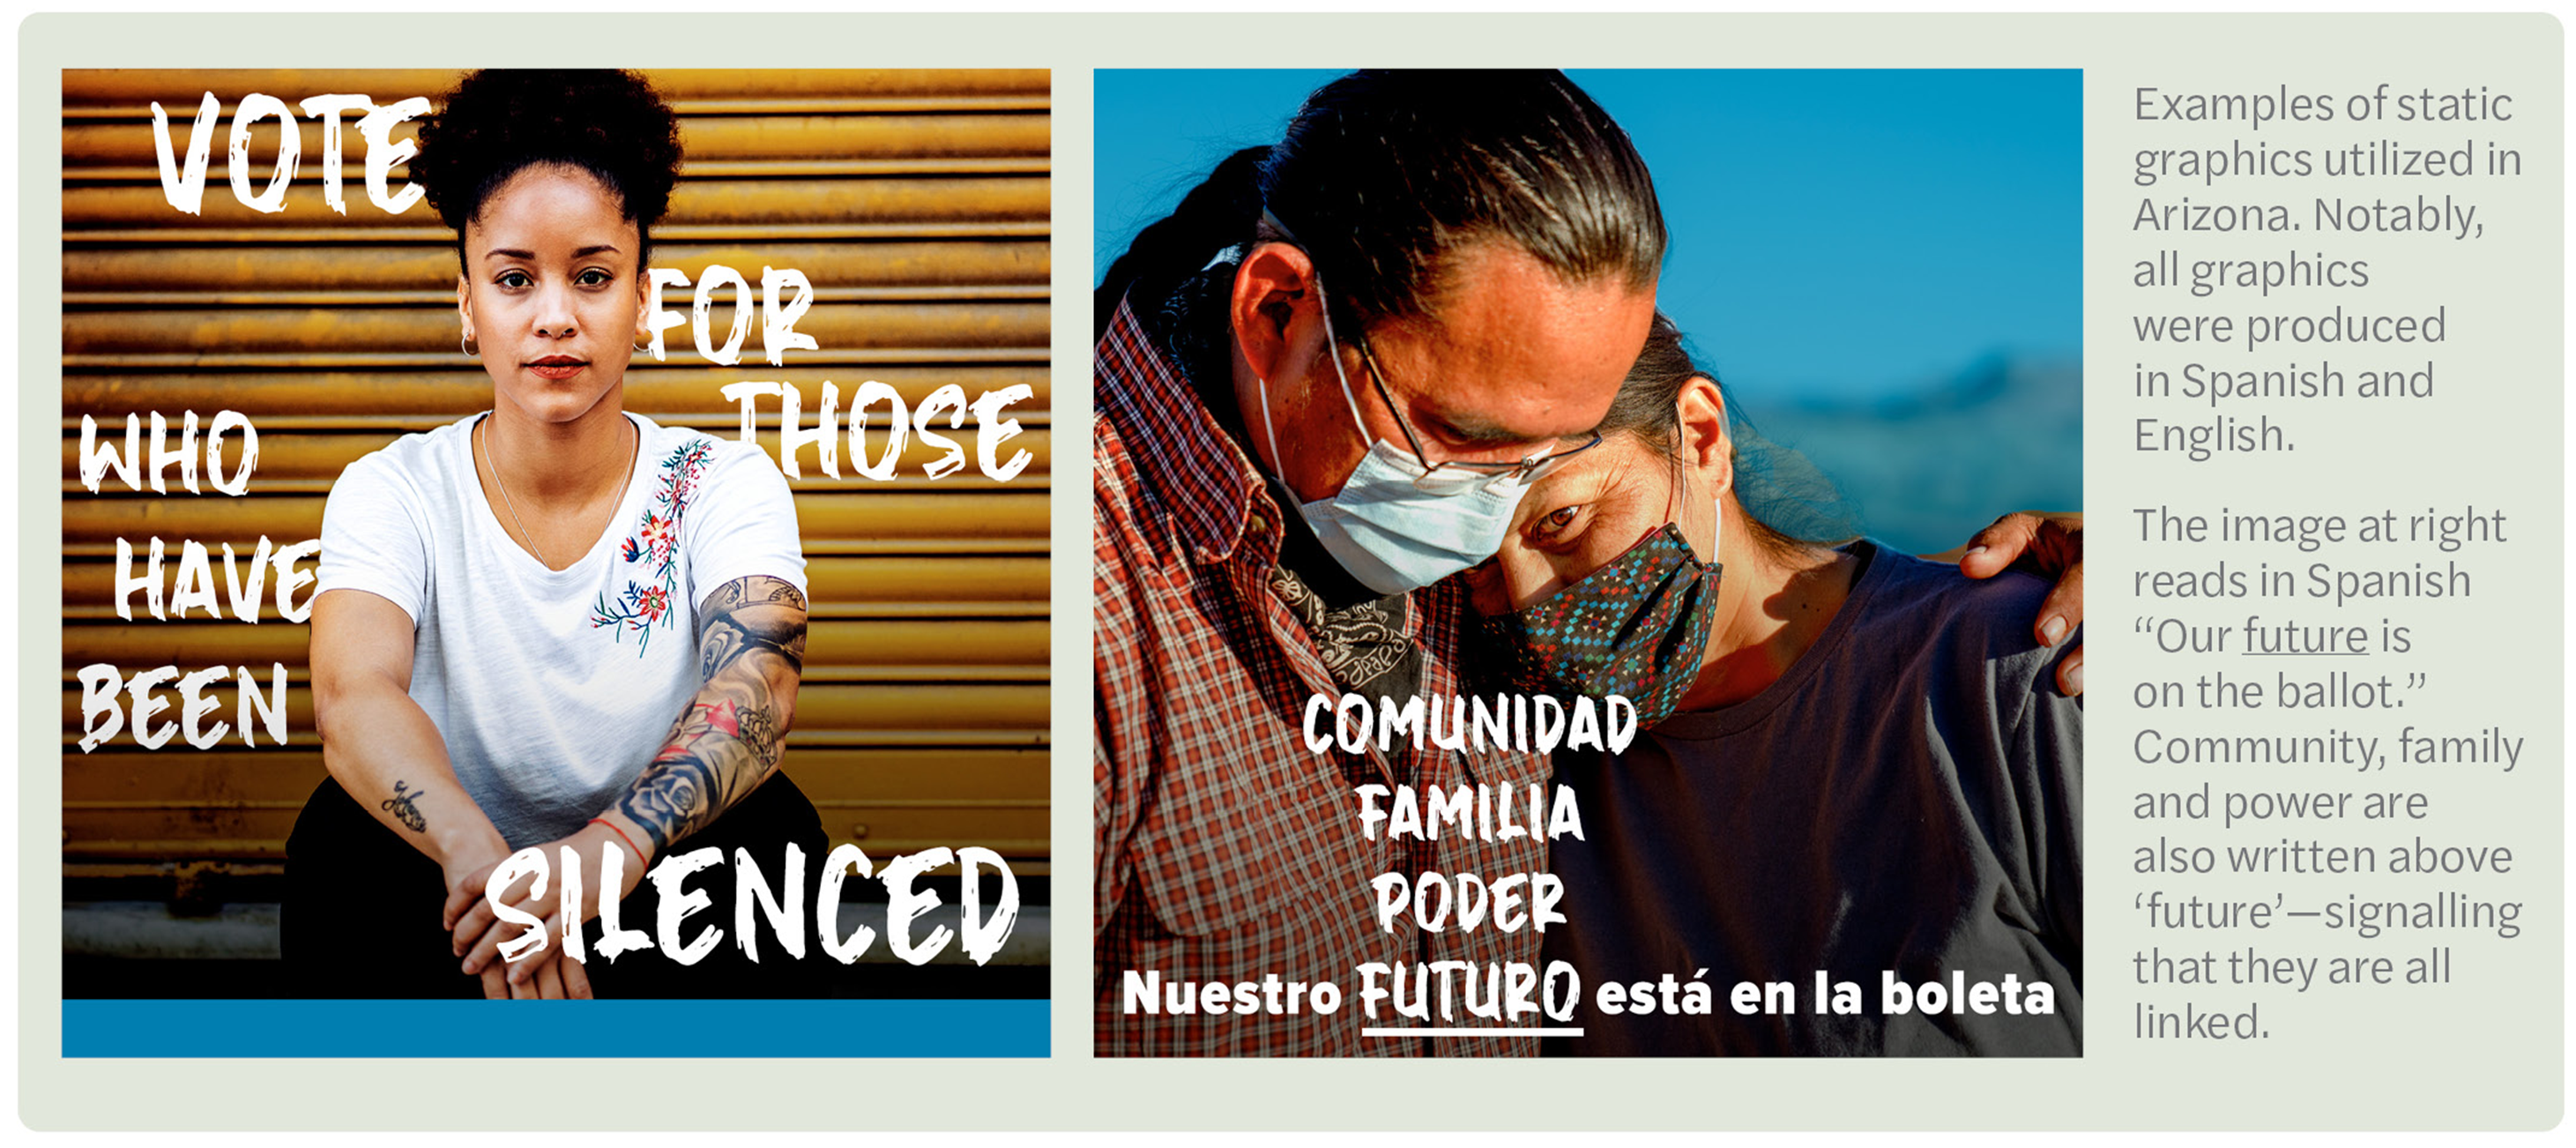 "Examples of static graphics utilized in Arizona. Notably, all graphics were produced in Spanish and English. The image at right reads in Spanish ""Our future is on the ballot."" Community, family and power are also written above 'future'—signaling that they are all linked."